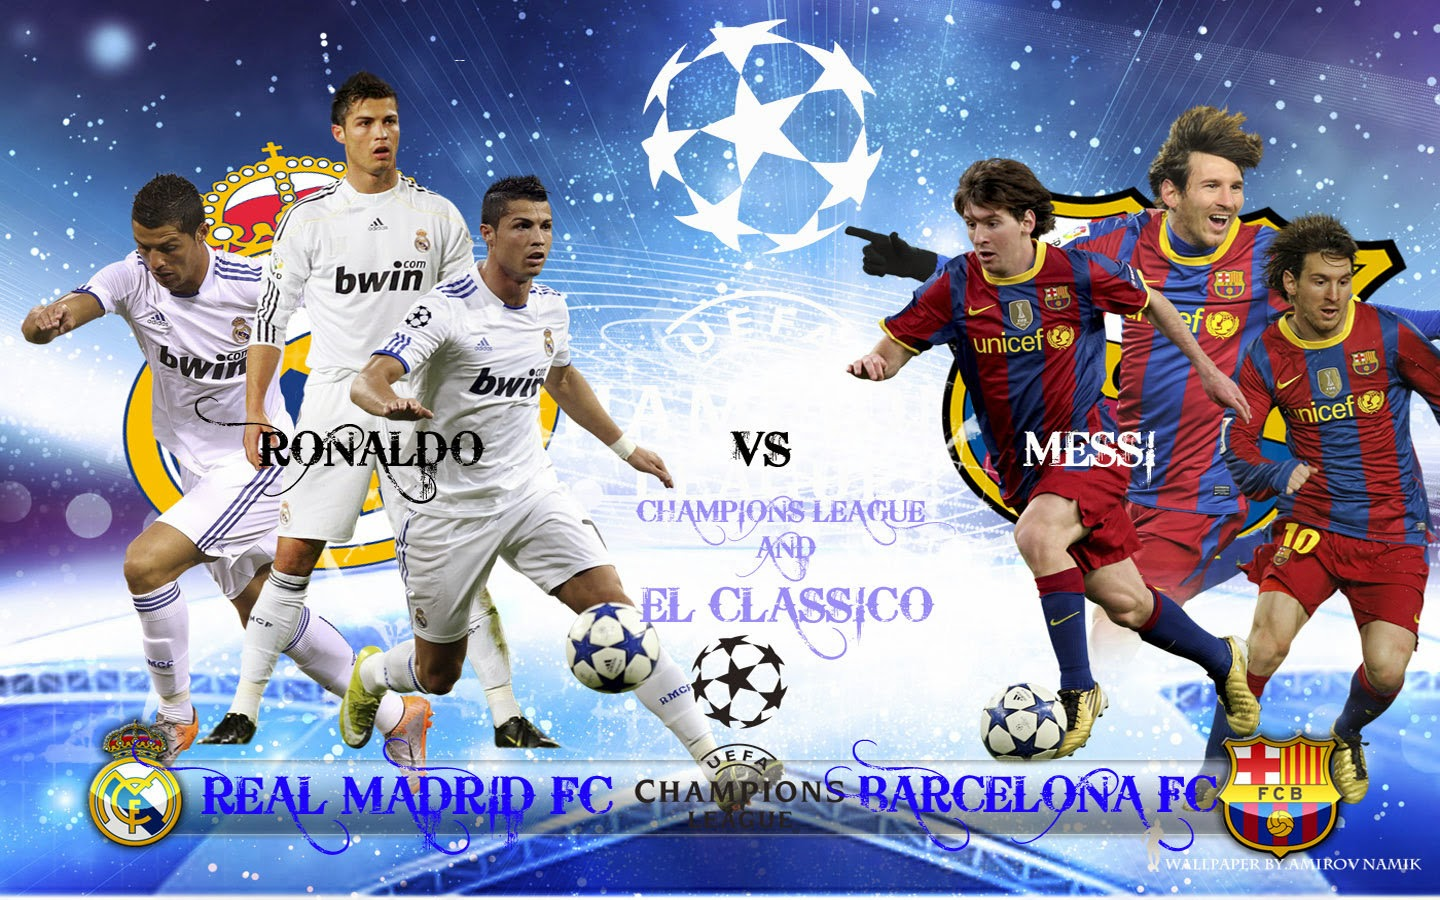 Blog BebengKristoni Hasil Pertandingan Real Madrid Vs Barcelona